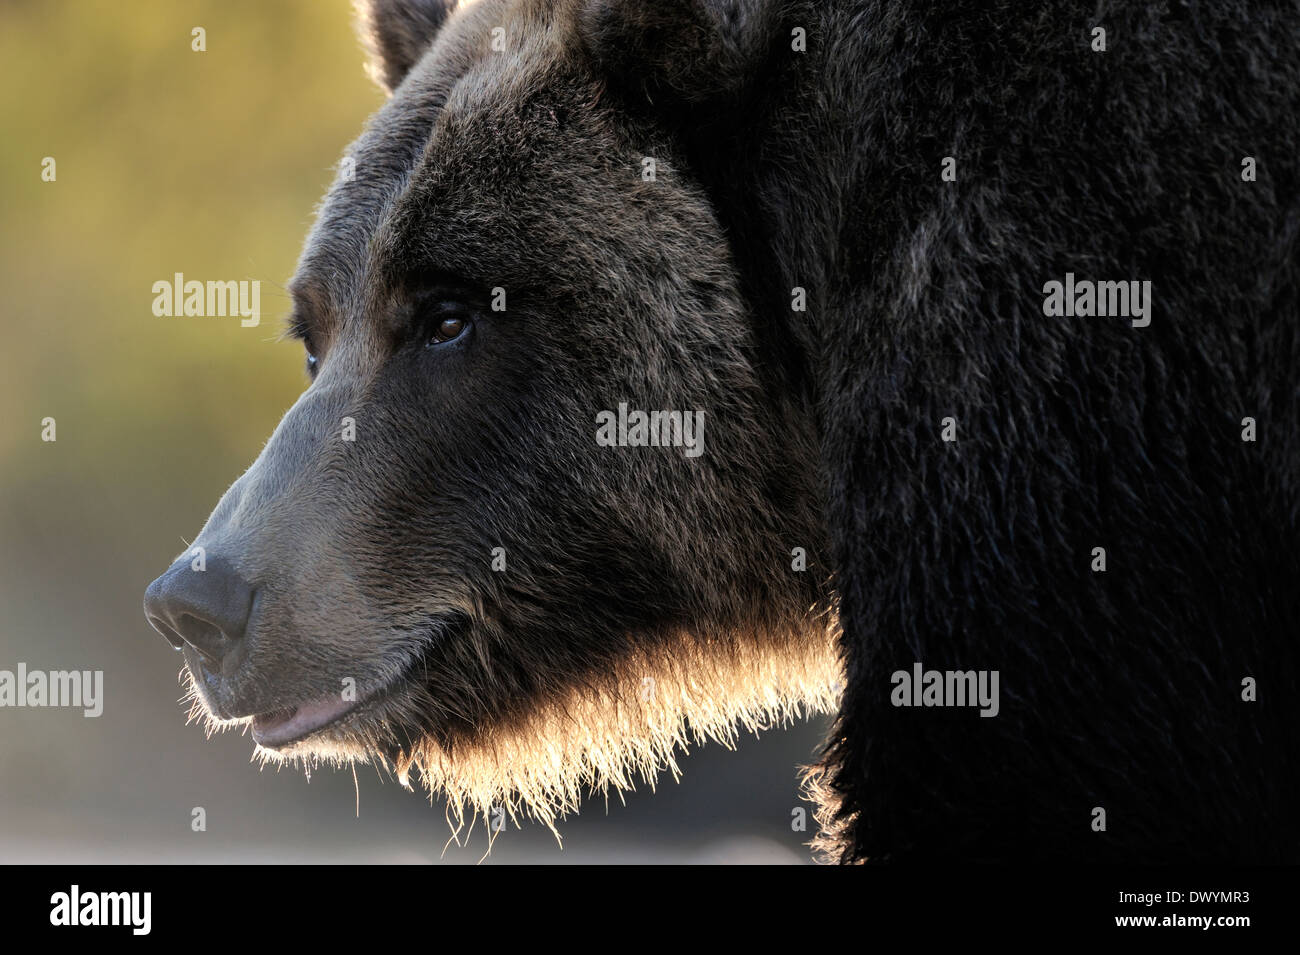 Grizzly bear (Ursus arctos horribilis) portrait with back light. - Stock Image